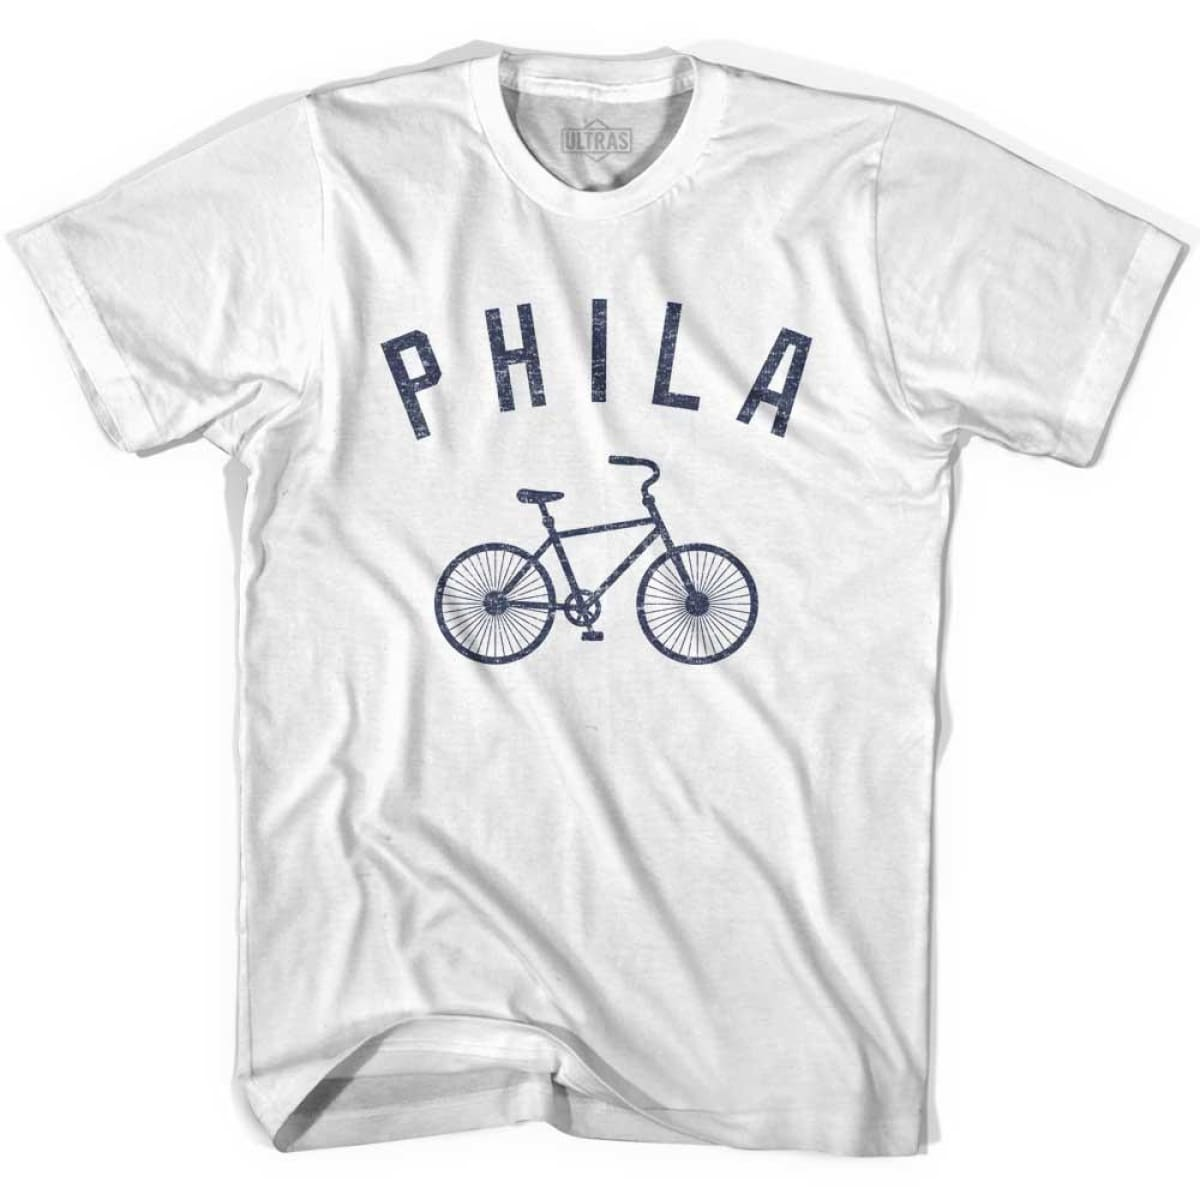 Philadelphia Phila Vintage Bike Soccer T-shirt - White / Youth X-Small - Ultras Club Soccer T-shirt